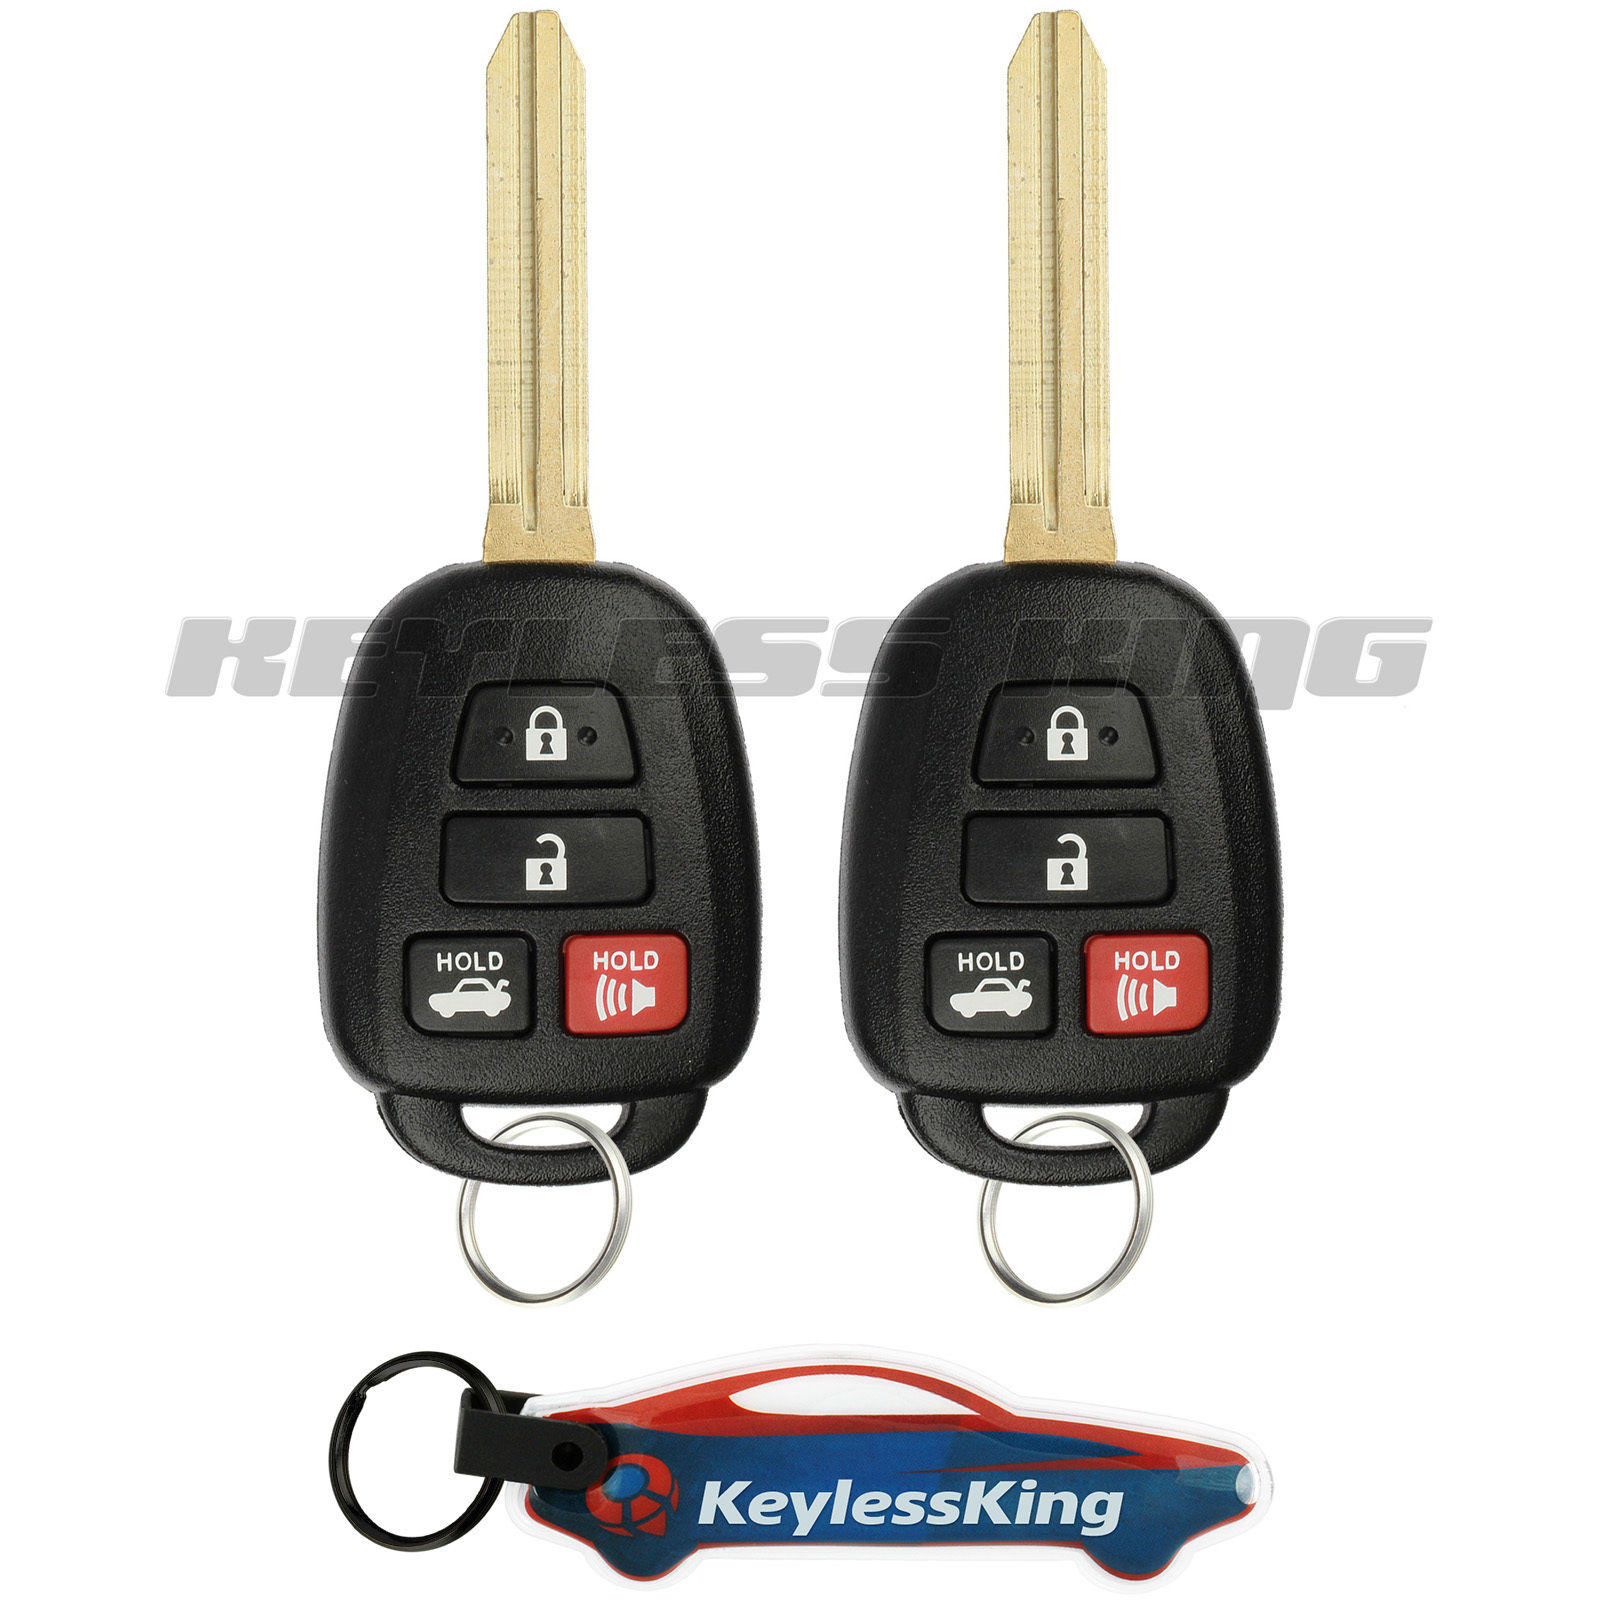 Amazing 2 Replacement For 2012 2014 Toyota Camry Key Fob Keyless